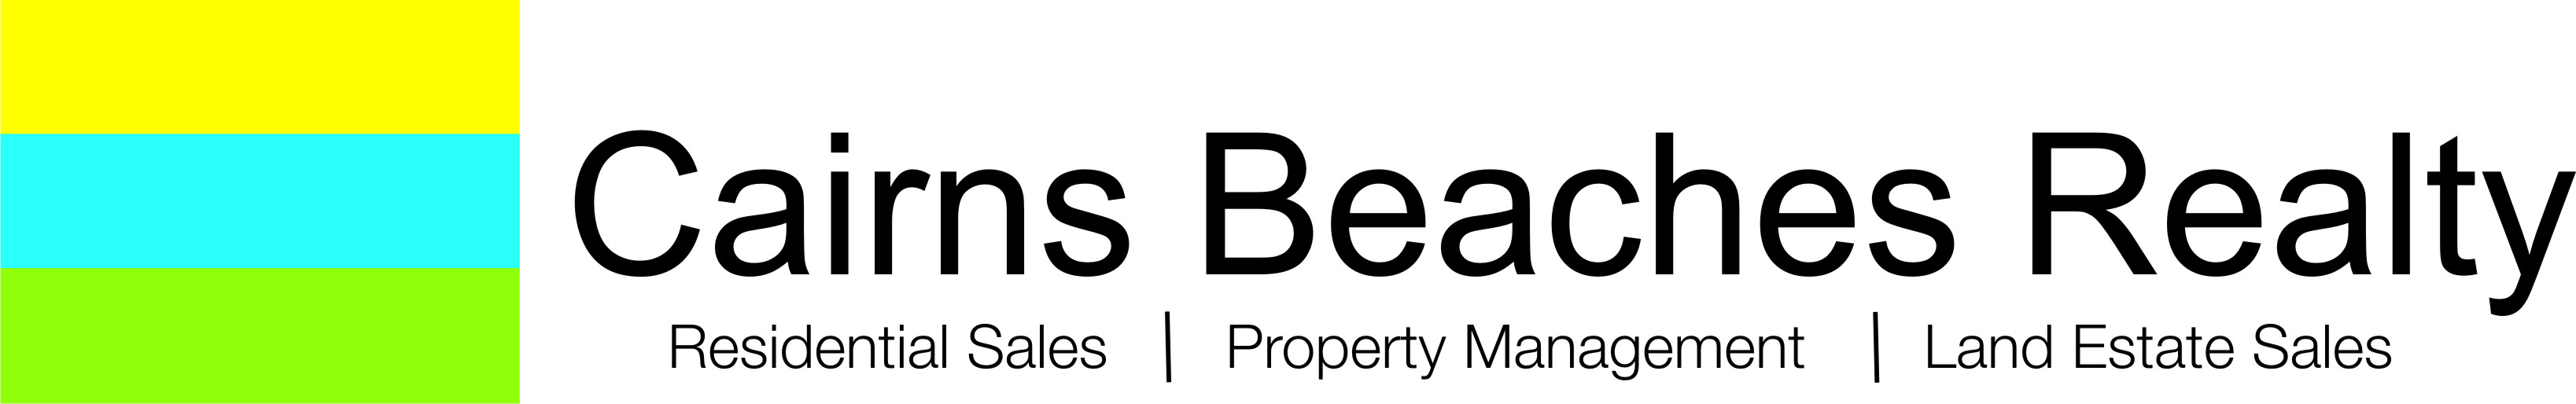 Cairns Beaches Realty, Kewarra Beach, 4879